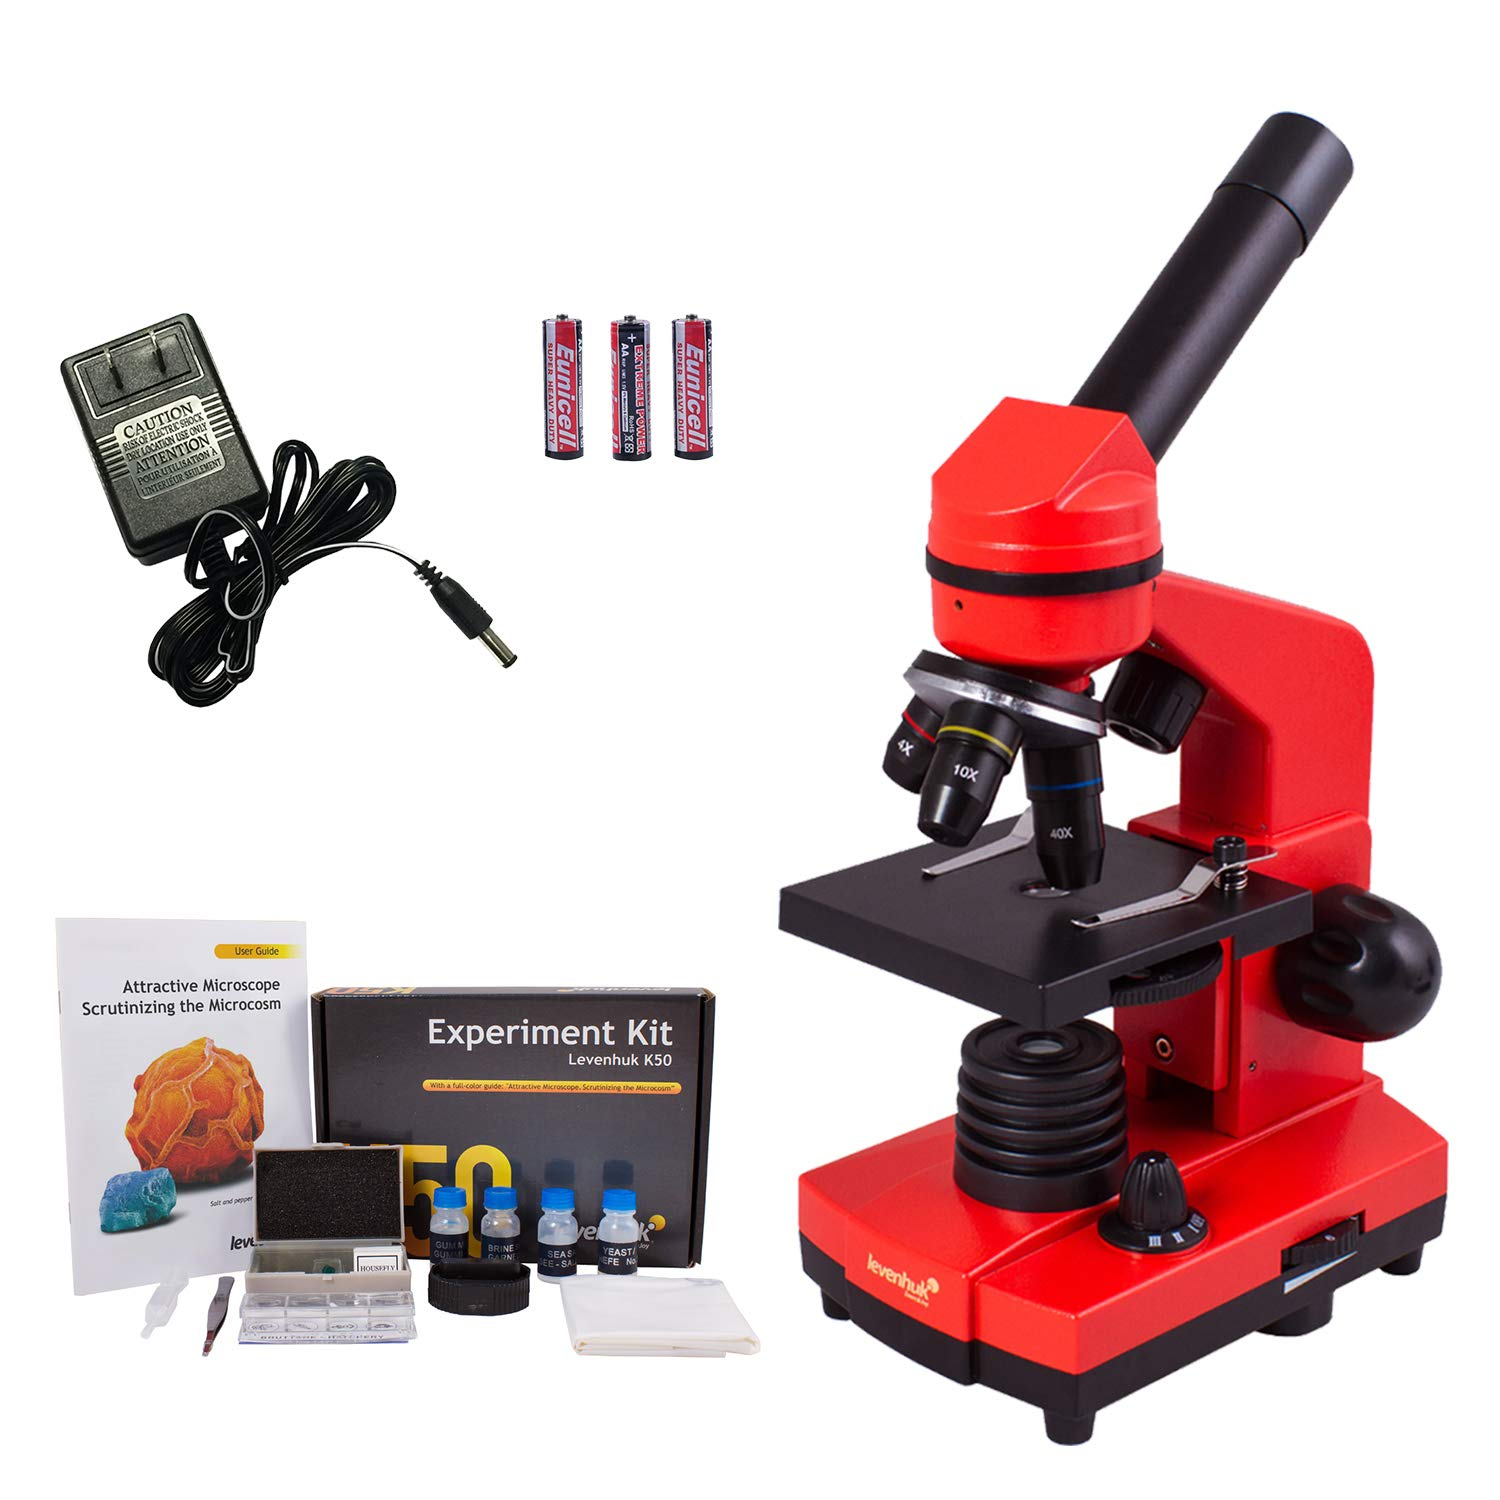 Levenhuk Rainbow 2L Orange Portable Microscope for Children with Experiment Kit, Upper and Lower LED Light for Observing All Kinds of Samples by Levenhuk